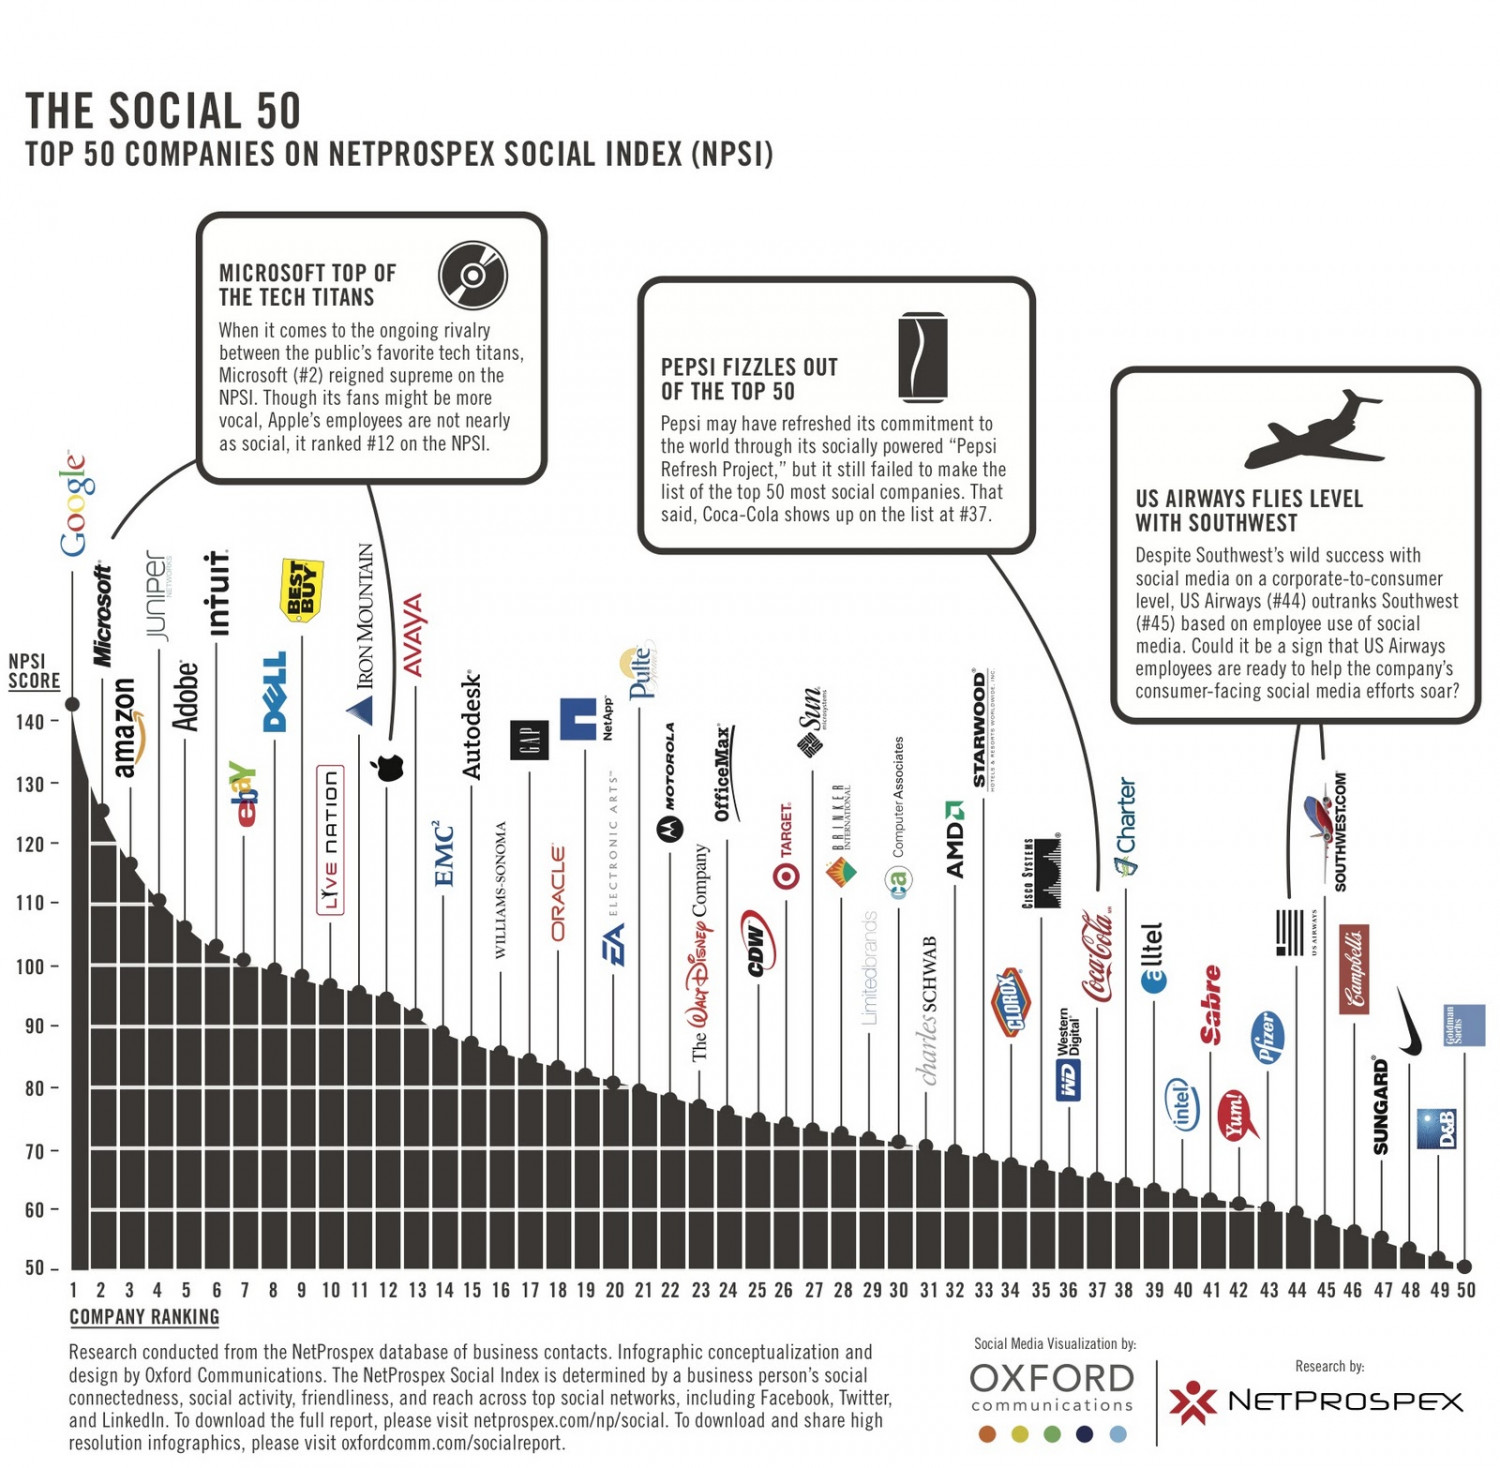 The Social 50: Top 50 Companies on the NetProspex Social Index (NPSI) Infographic